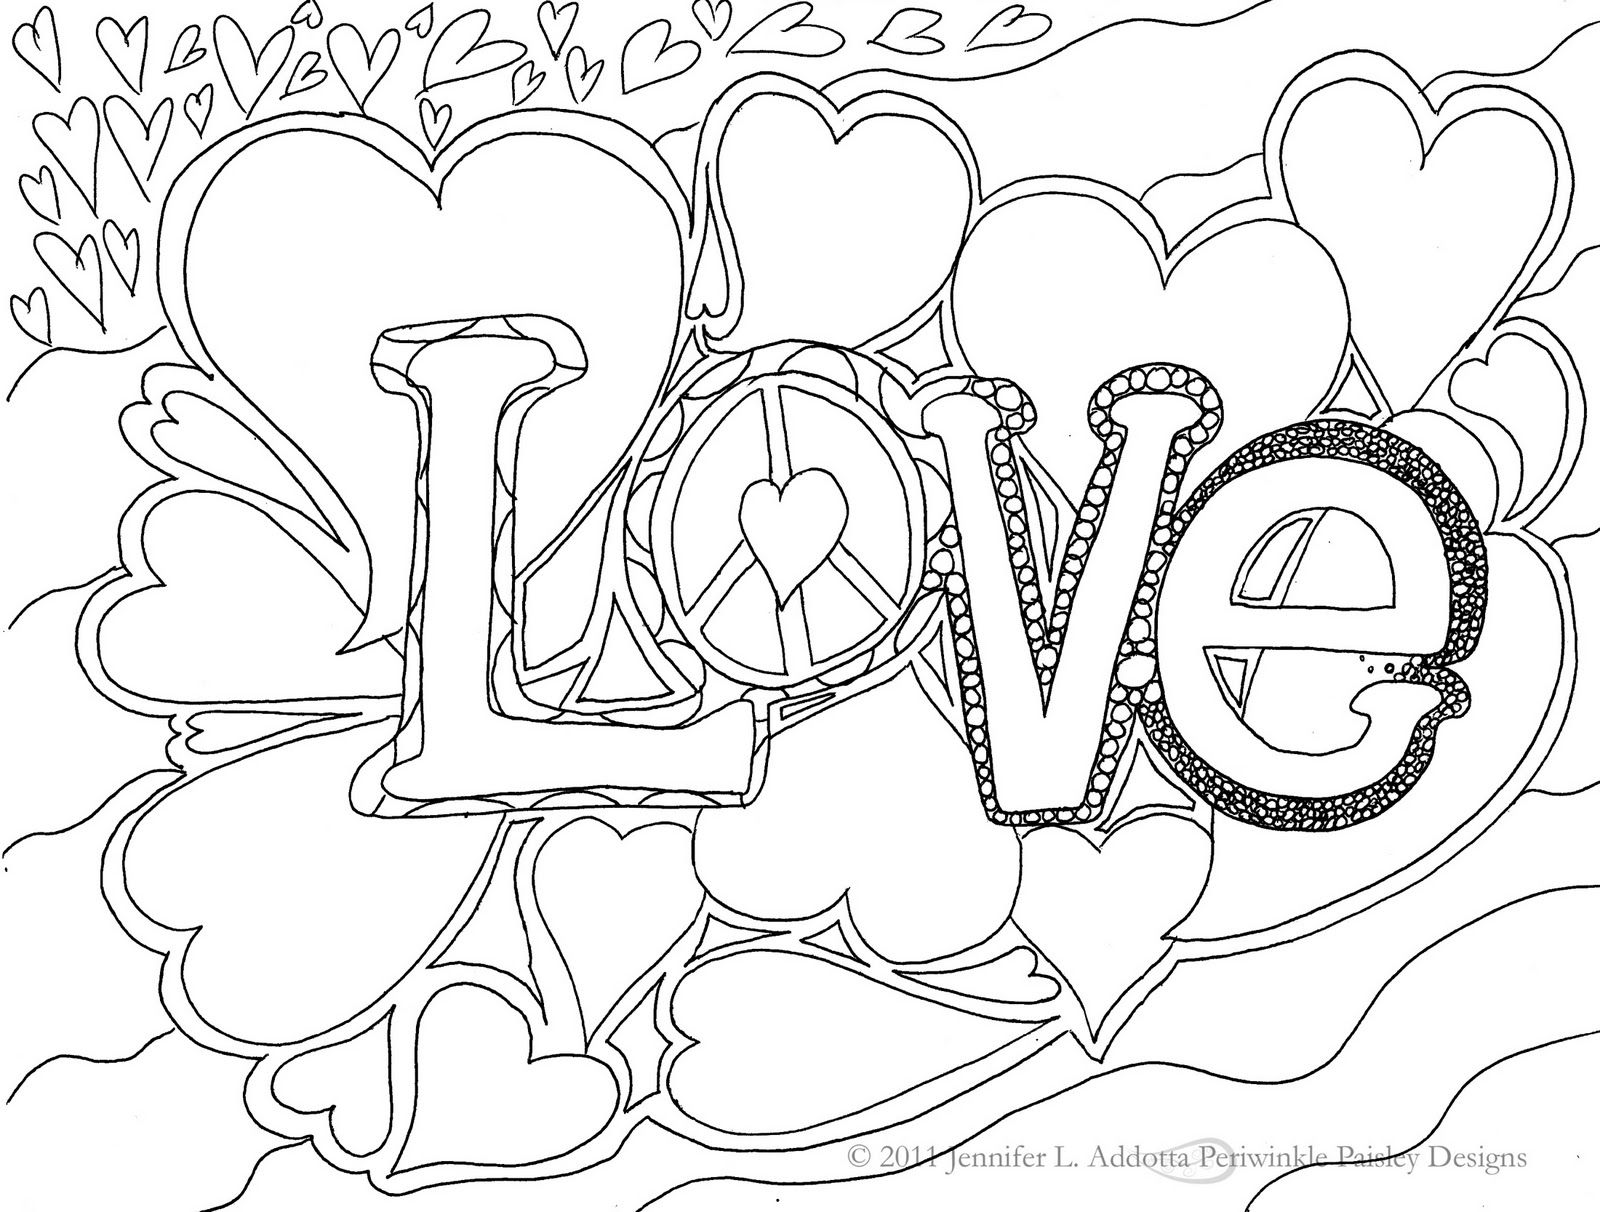 LoveColoringPagesForAdults  free coloring page for you or